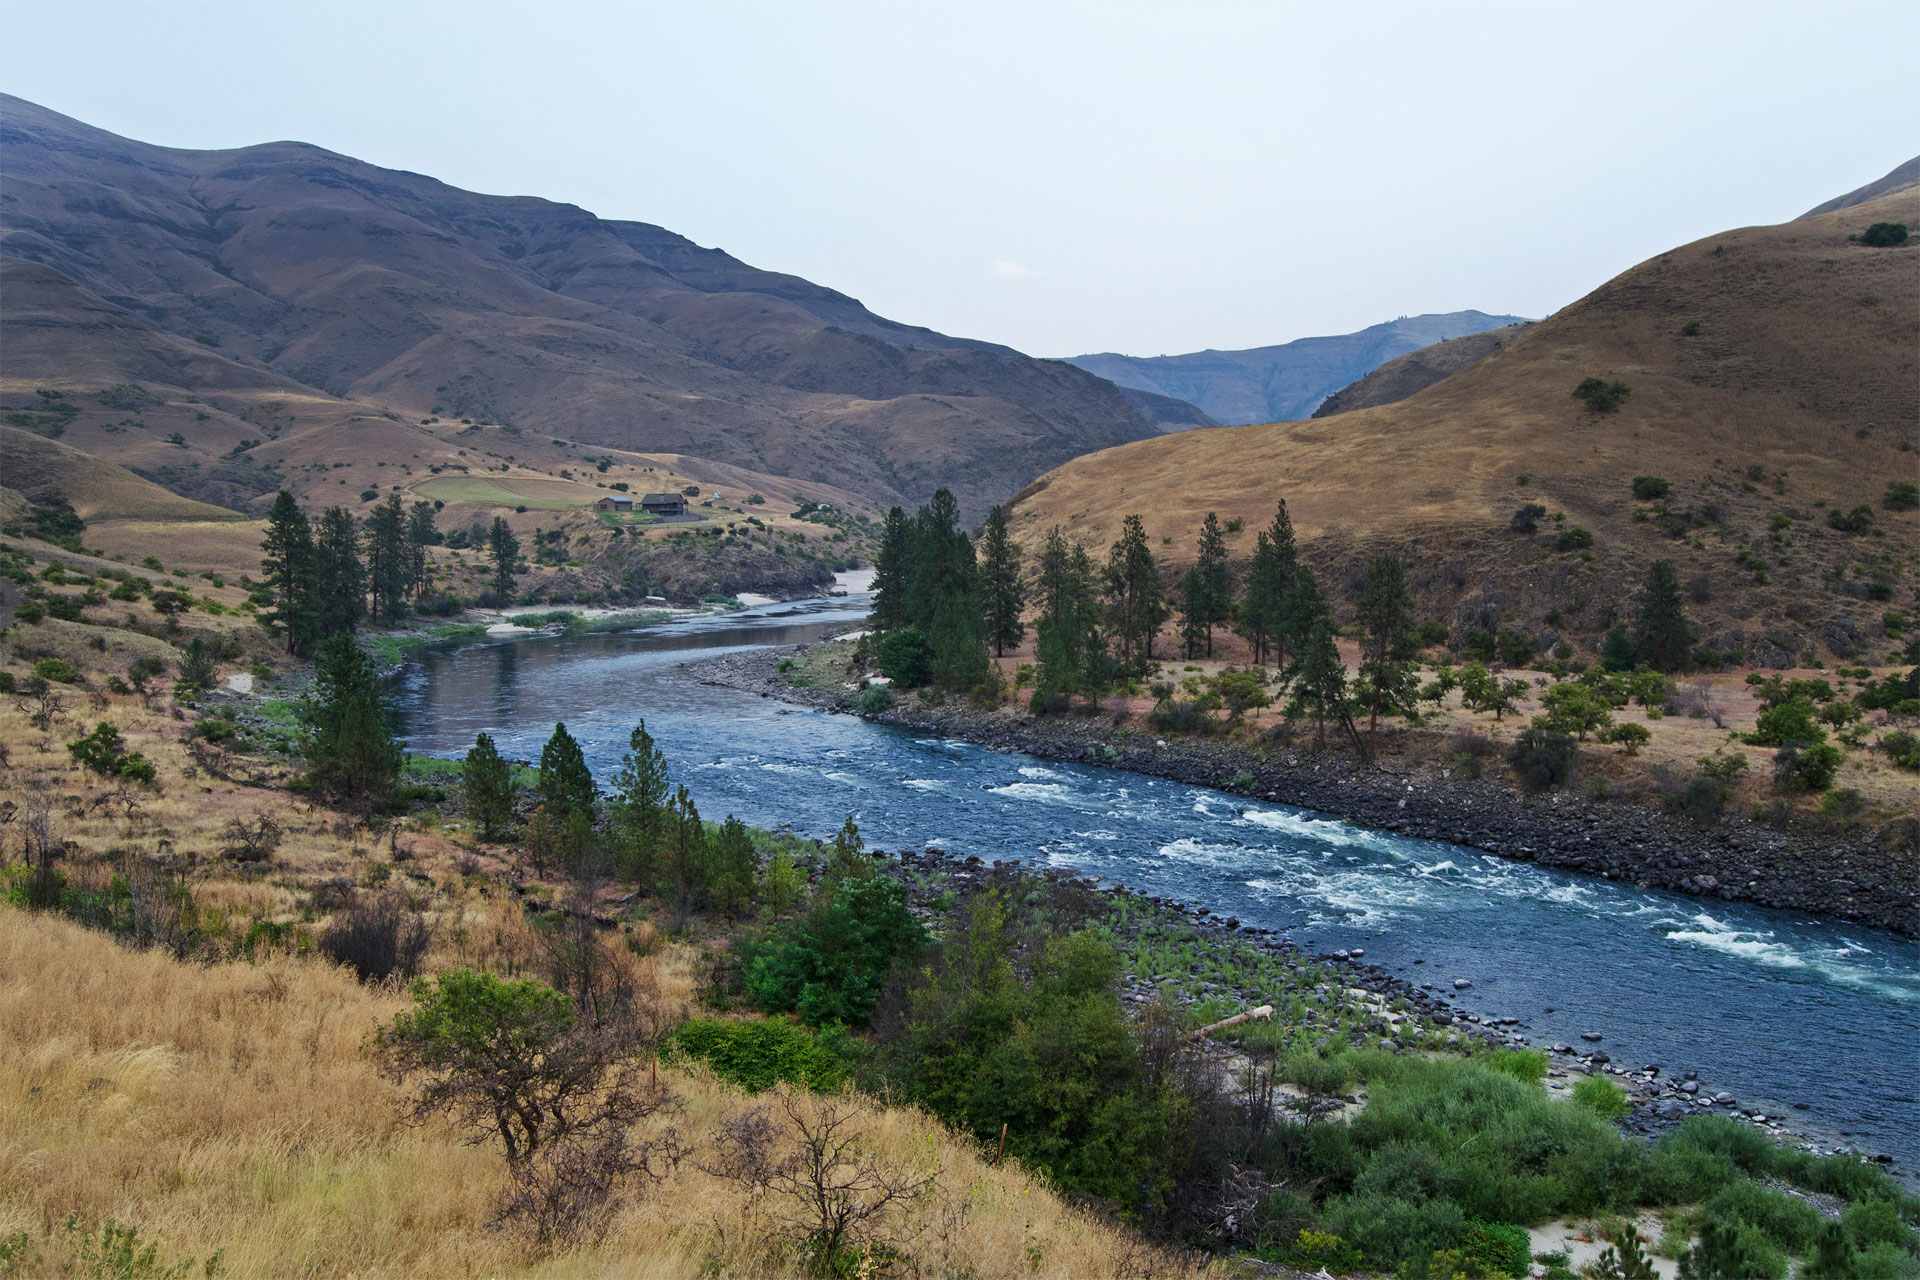 Lower Salmon River in Idaho; Courtesy of Jim Black/Shutterstock.com